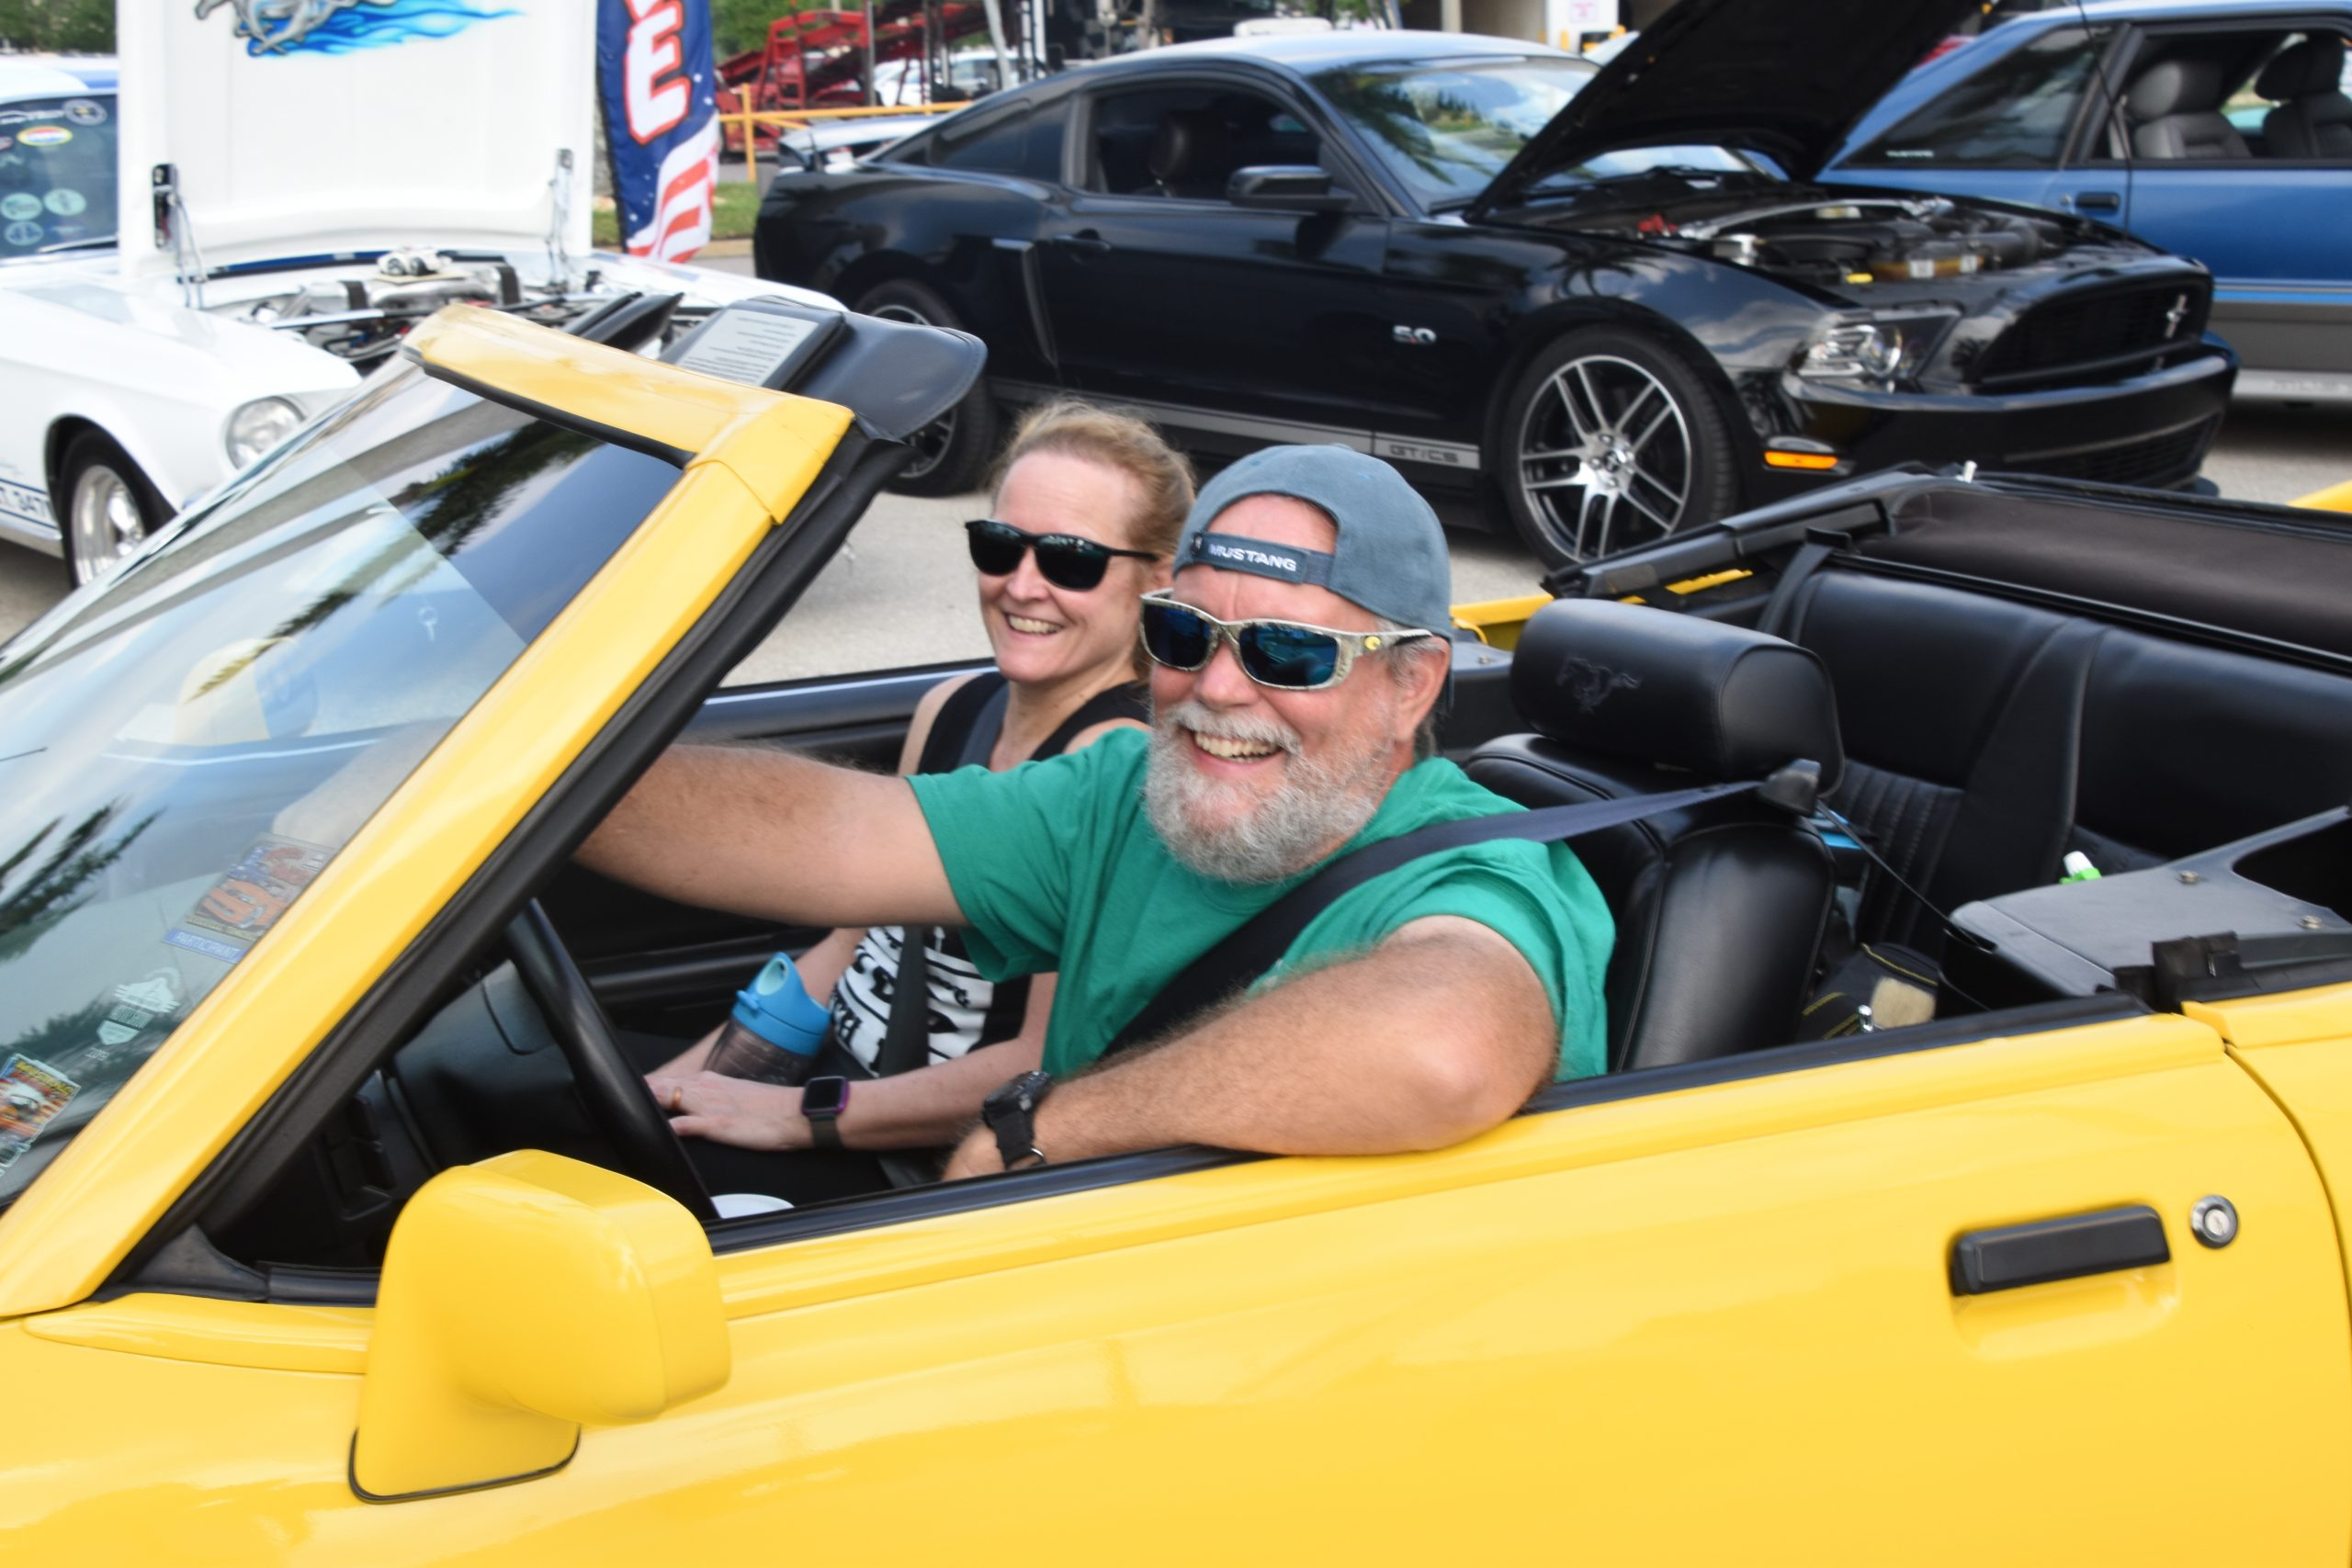 Couple arriving at car show in yellow mustang convertible